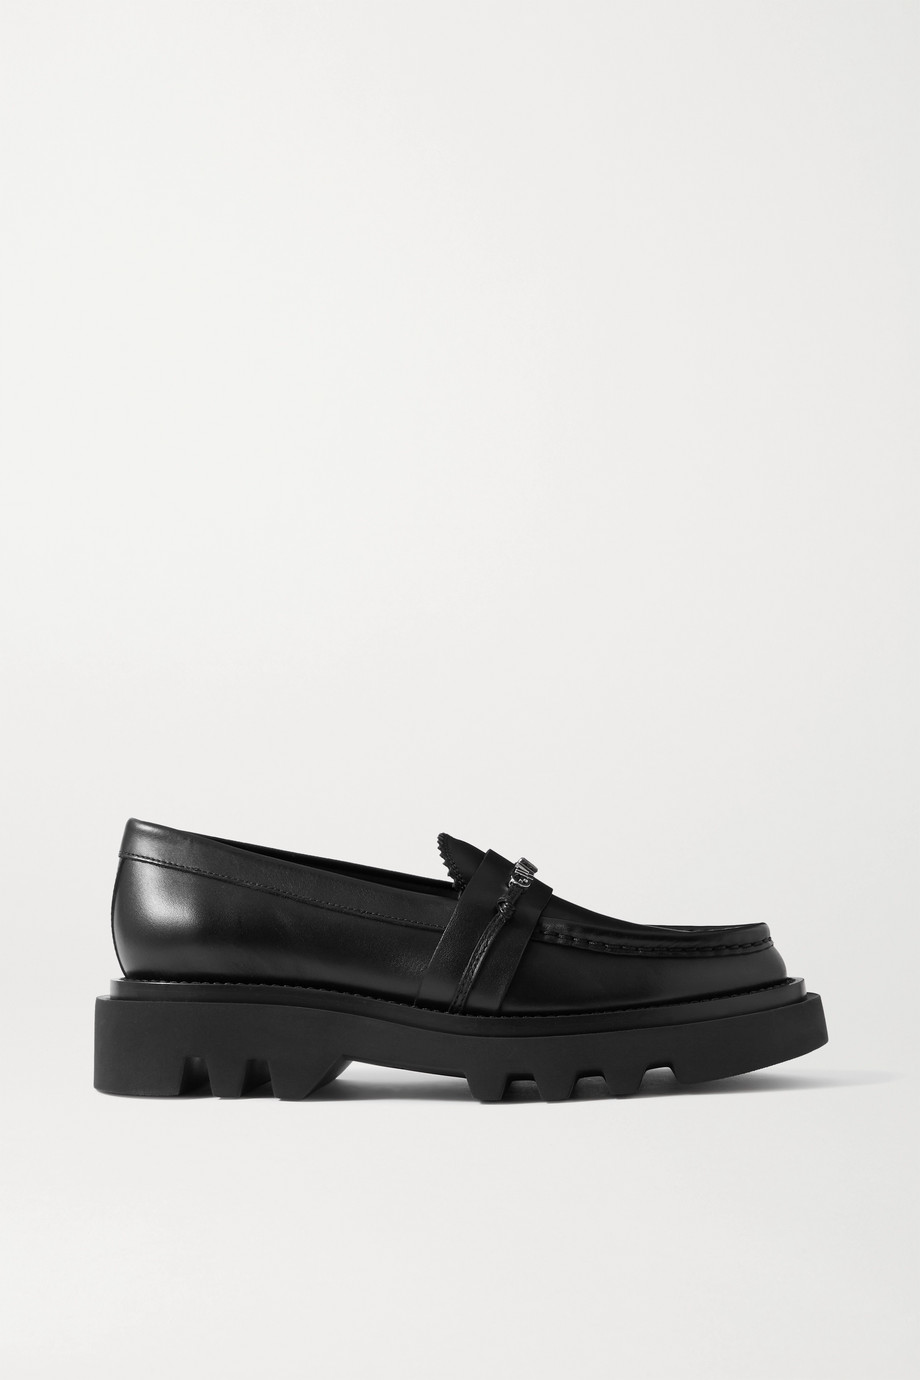 GIVENCHY Elba logo-embellished leather platform loafers